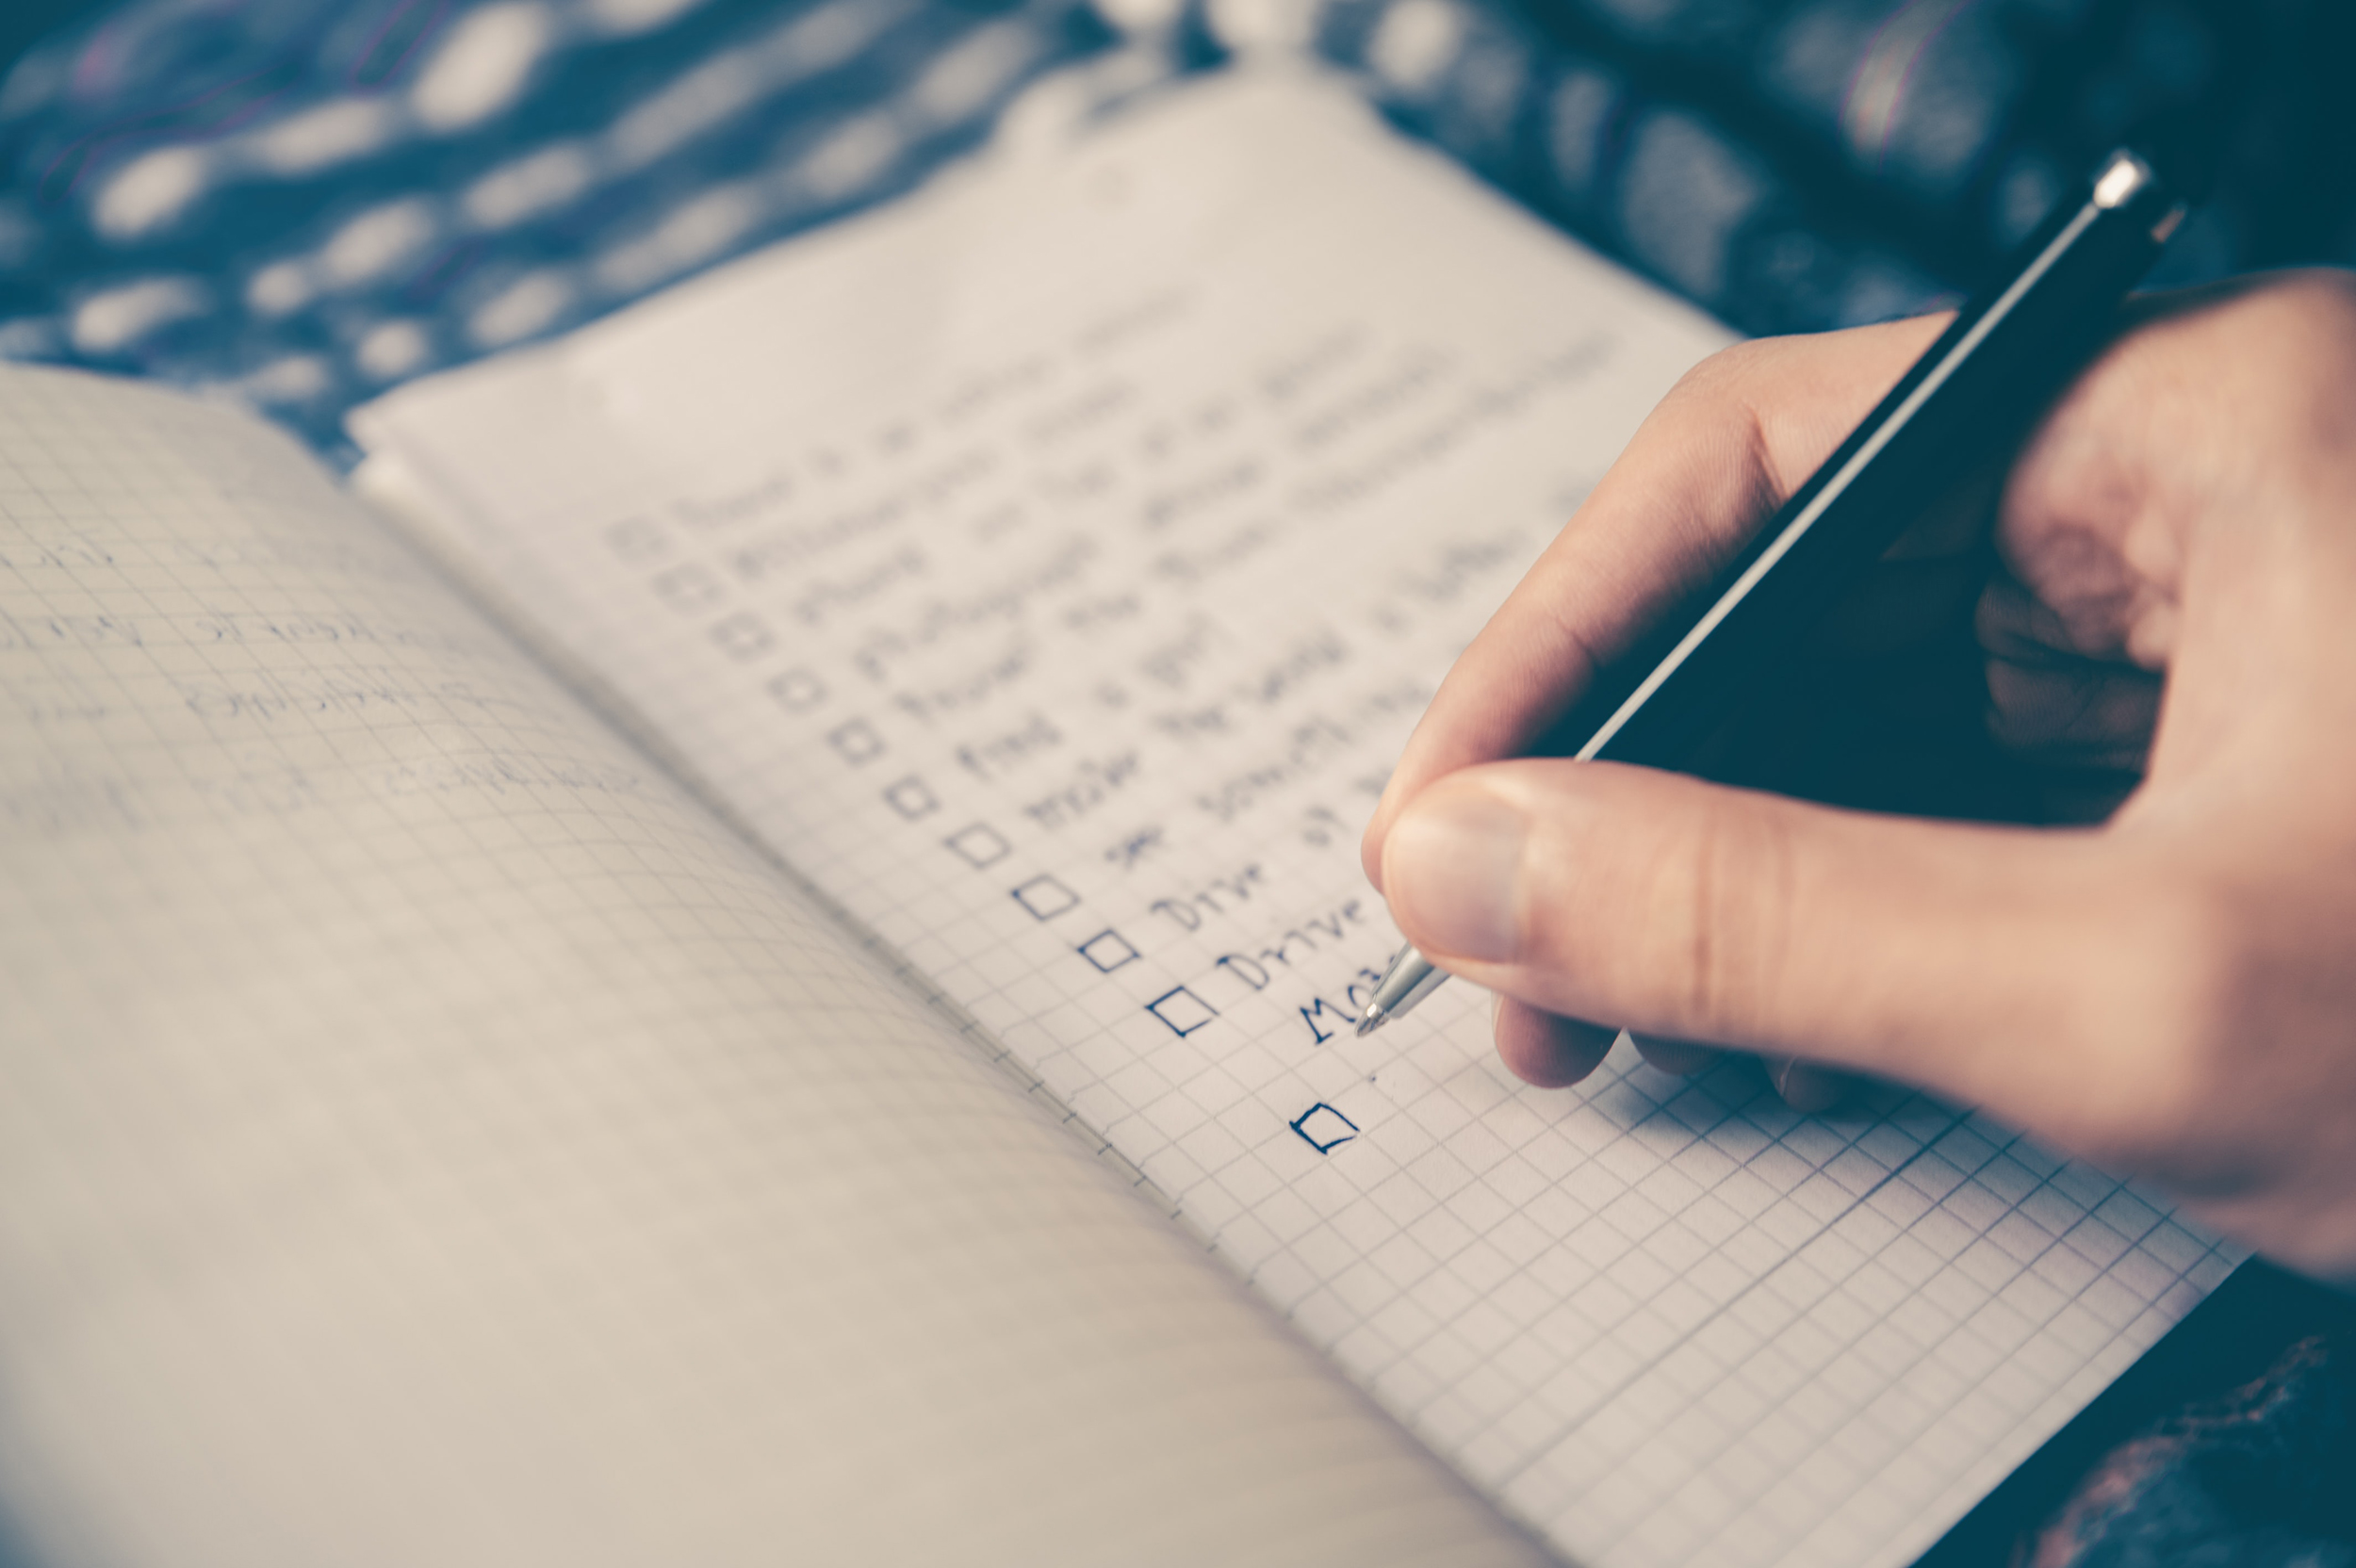 Hand checking off a to-do list.